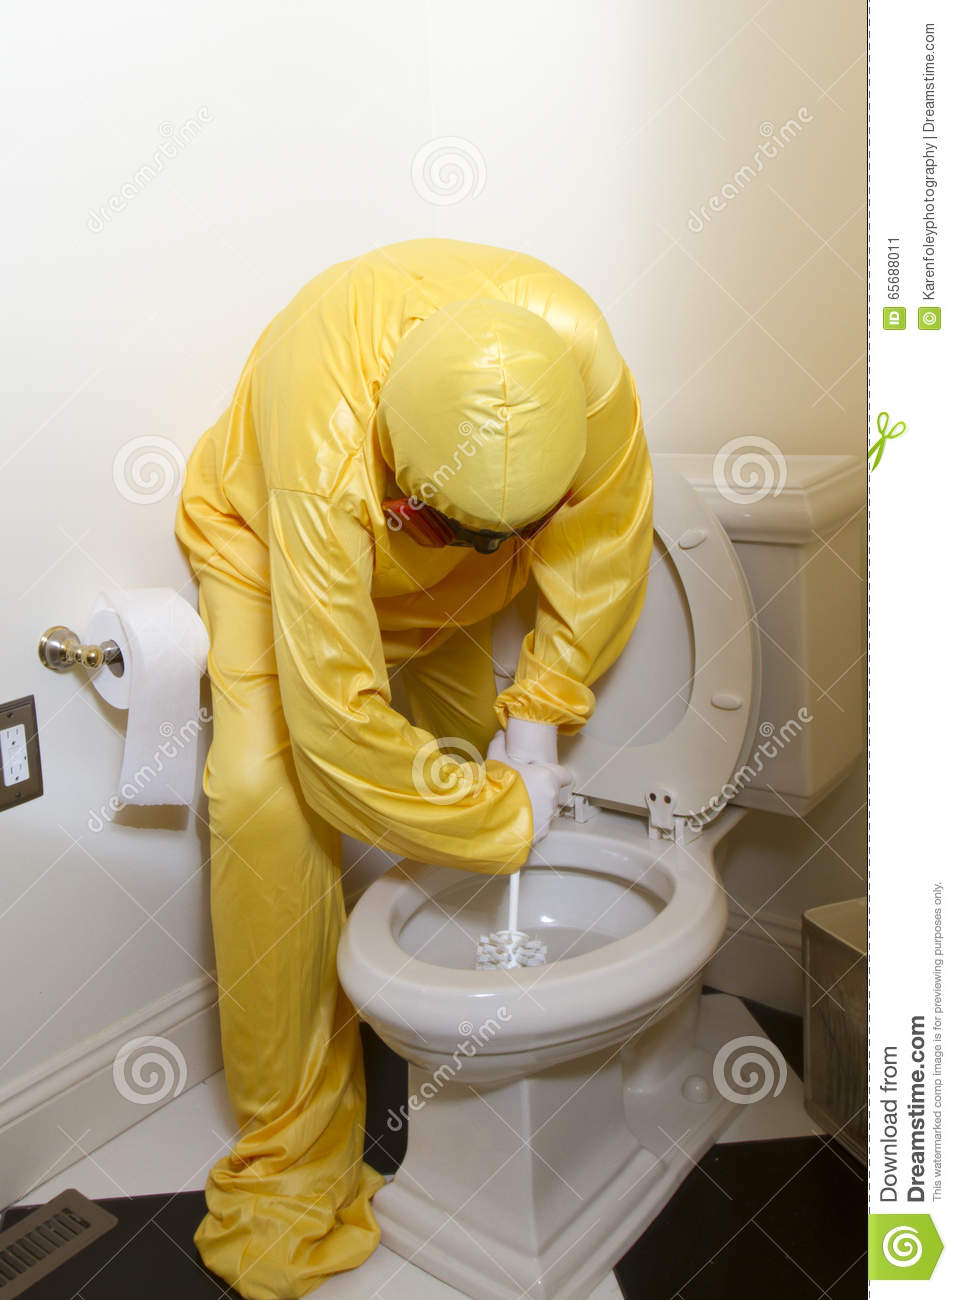 Scrubbing Filthy Toilet Stock Photo Image 65688011. Filthy Bathroom